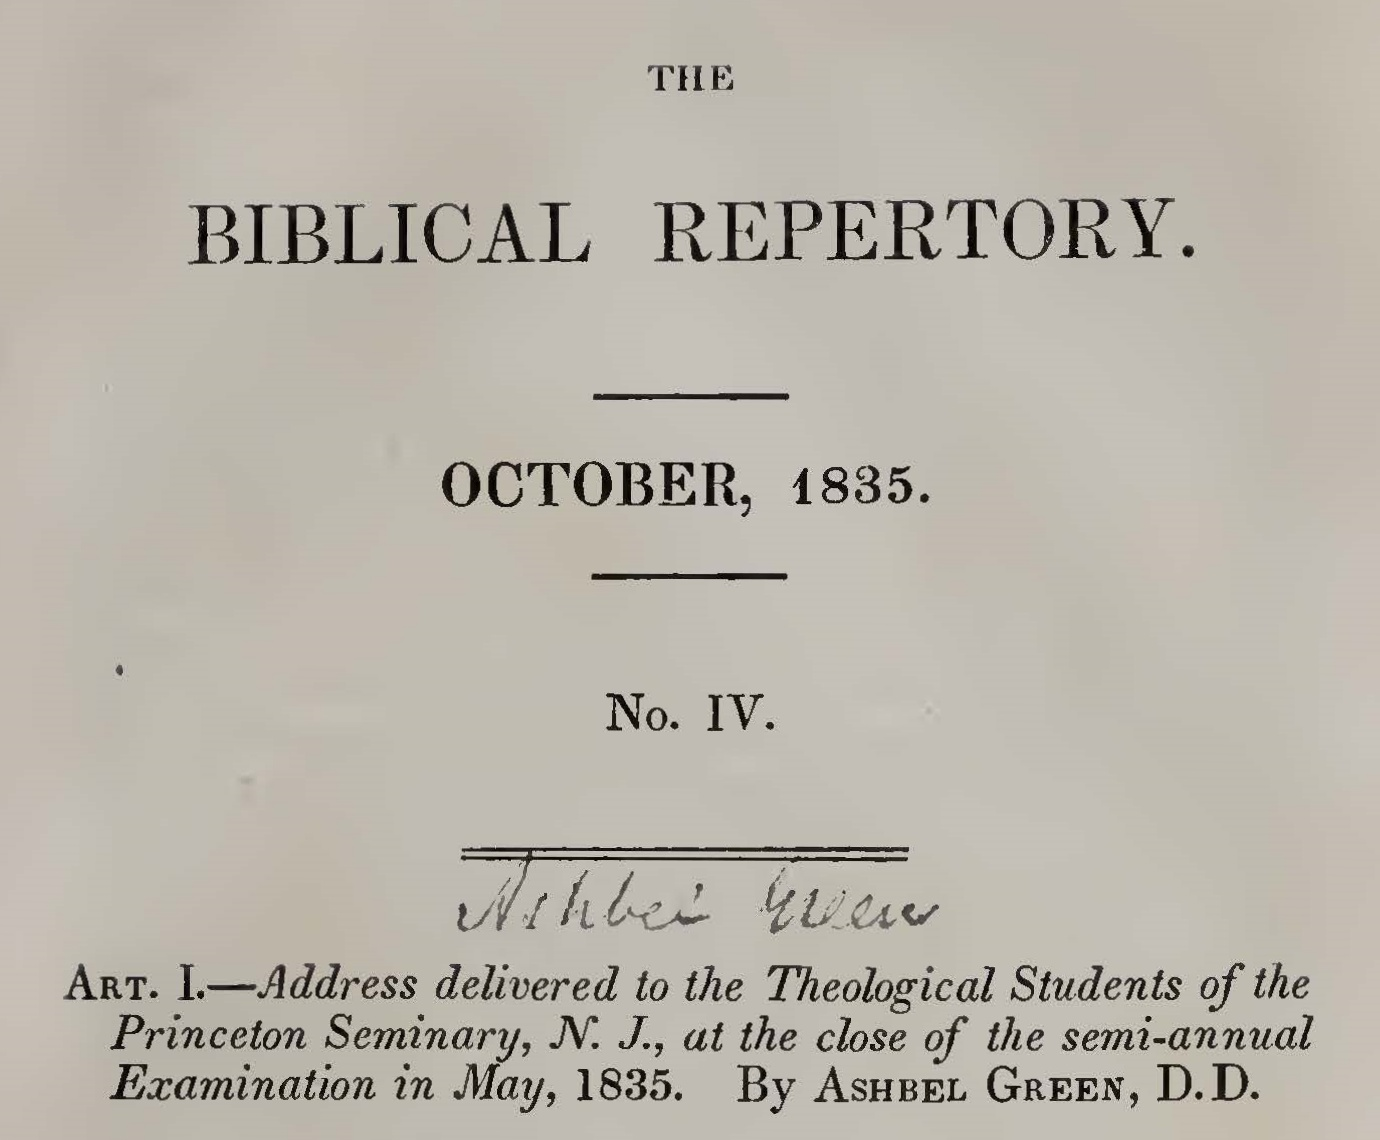 Green, Ashbel, Address Delivered to the Theological Students of the Princeton Seminary, N. J., at the Close of the Semi-annual Examination in May, 1835 Title Page.jpg